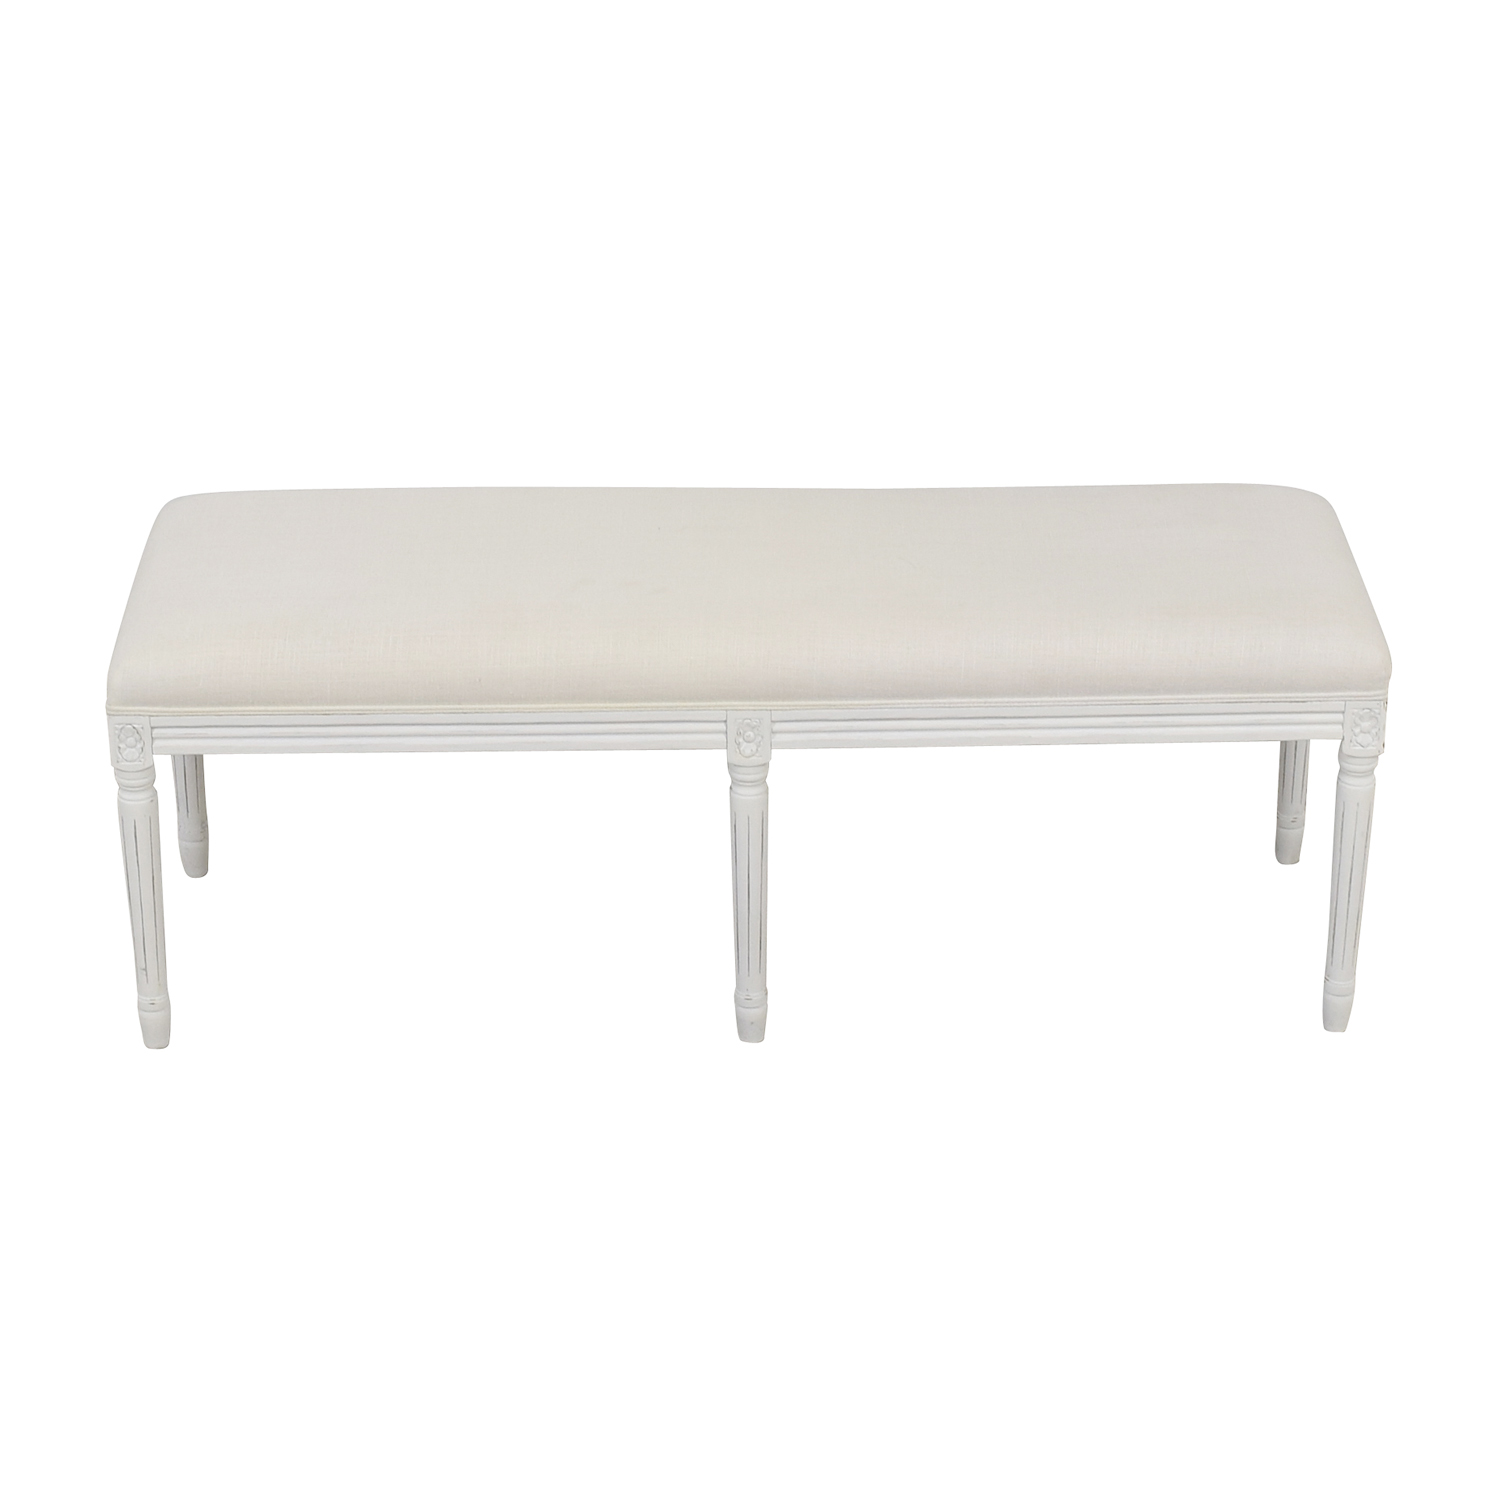 Restoration Hardware Restoration Hardware Louis White Bench used